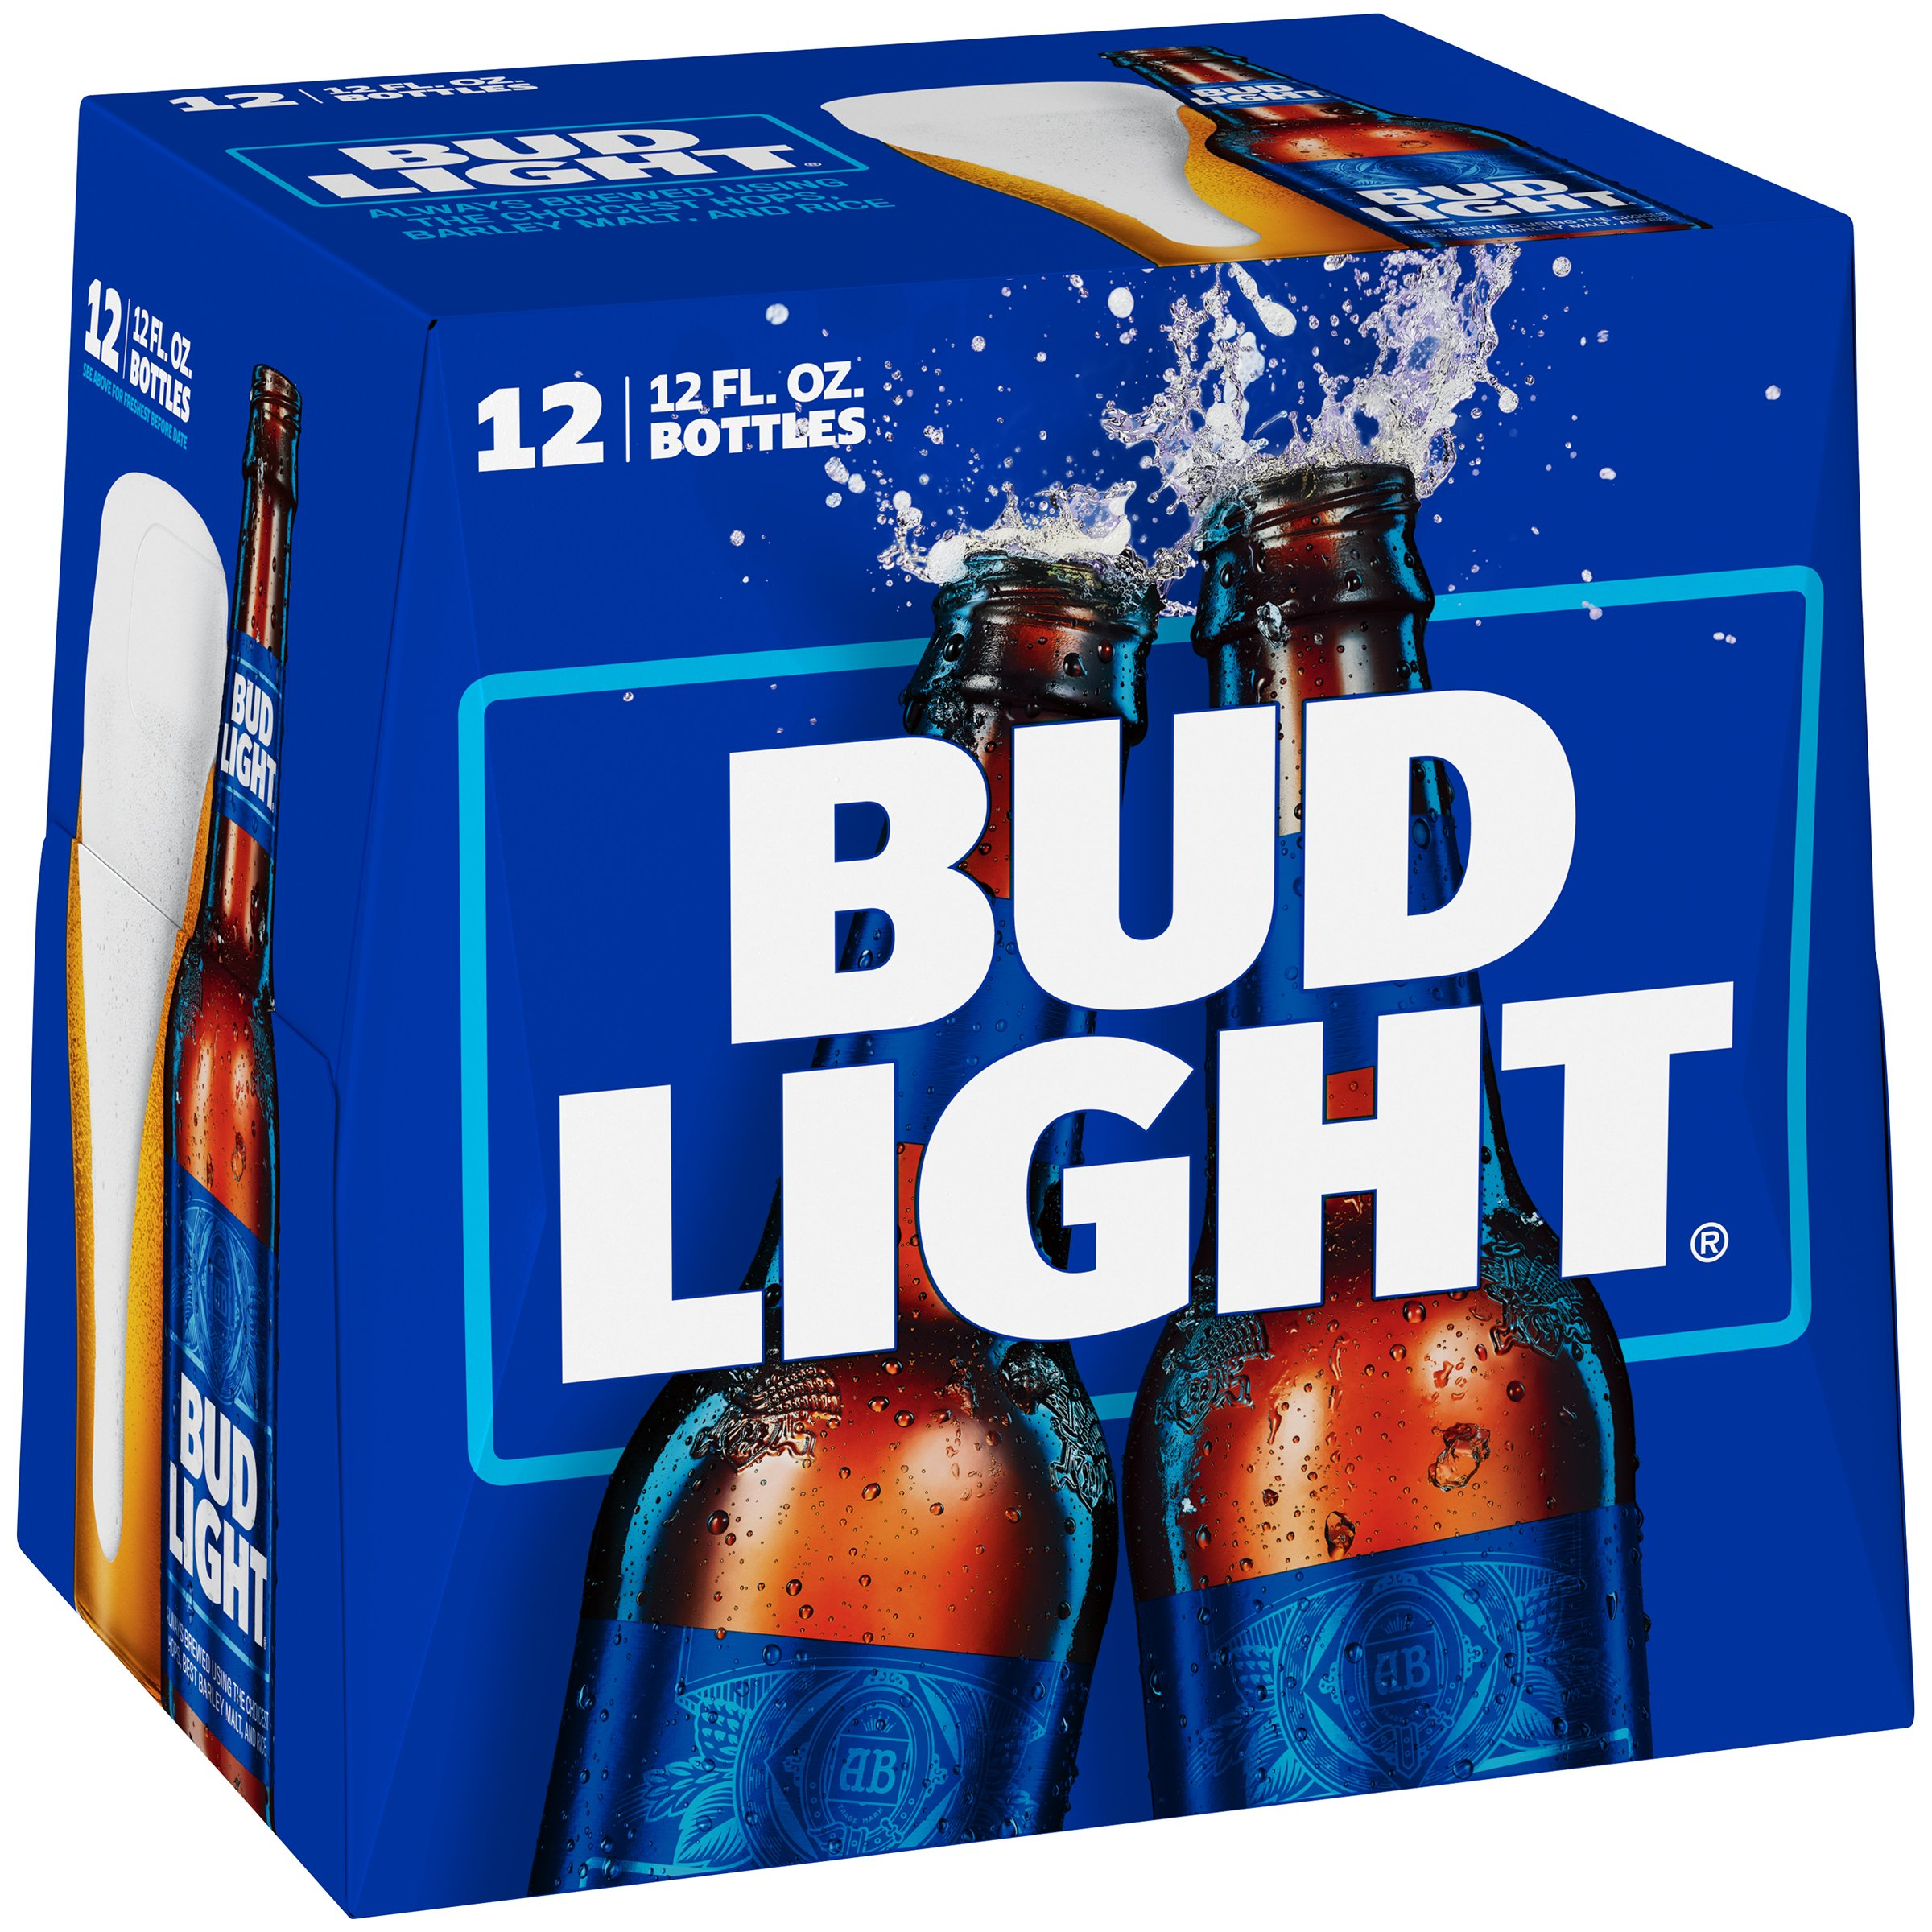 Bud Light Beer 12 Oz Bottles   Shop Domestic Beer At HEB Amazing Ideas